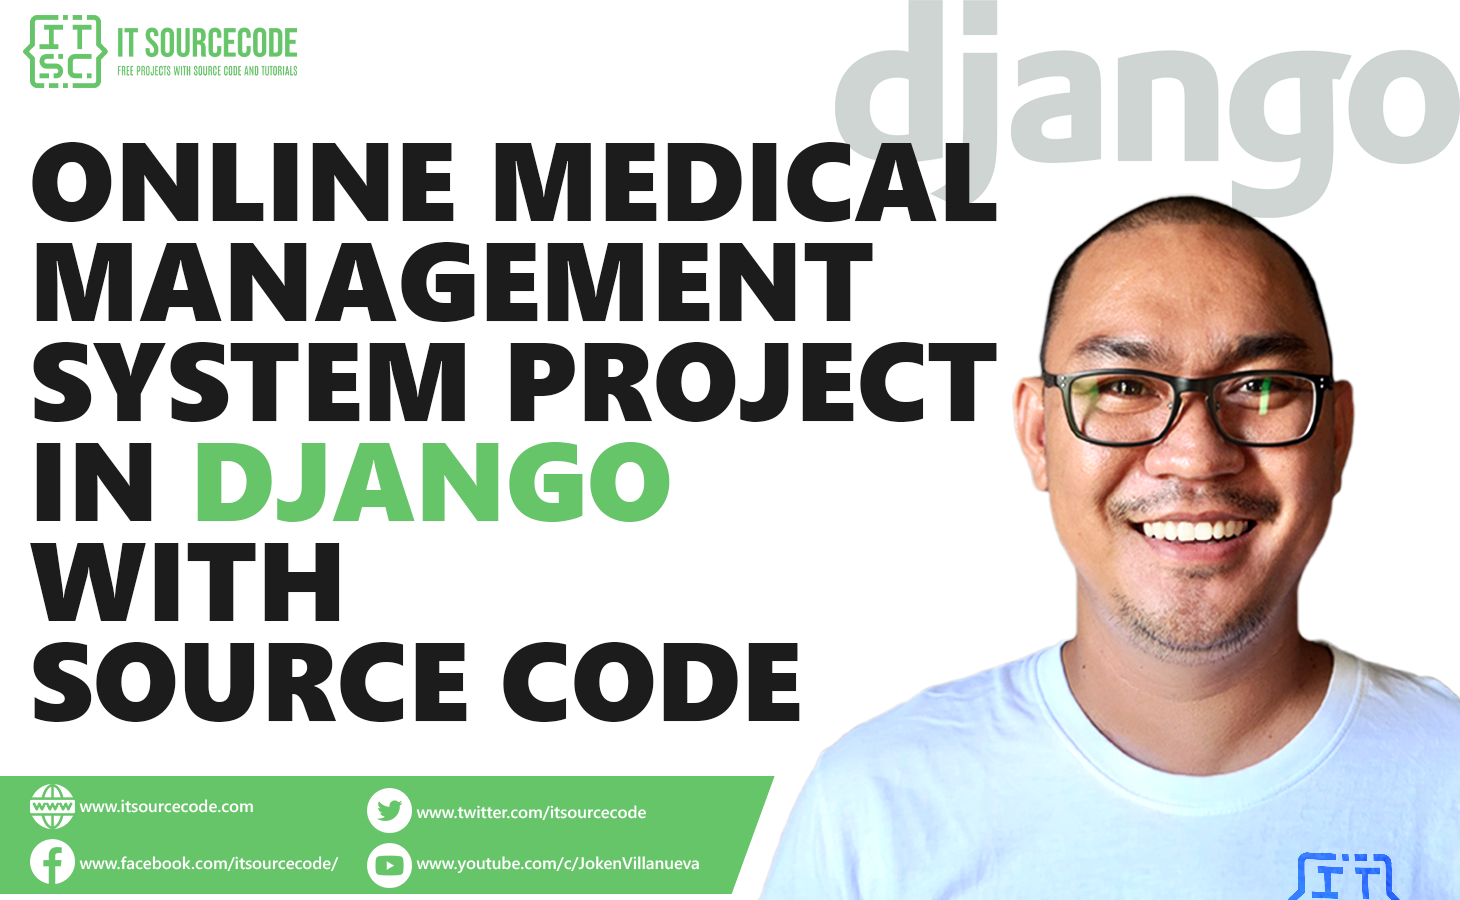 Online Medical Management System Project in Django with SOurce Code